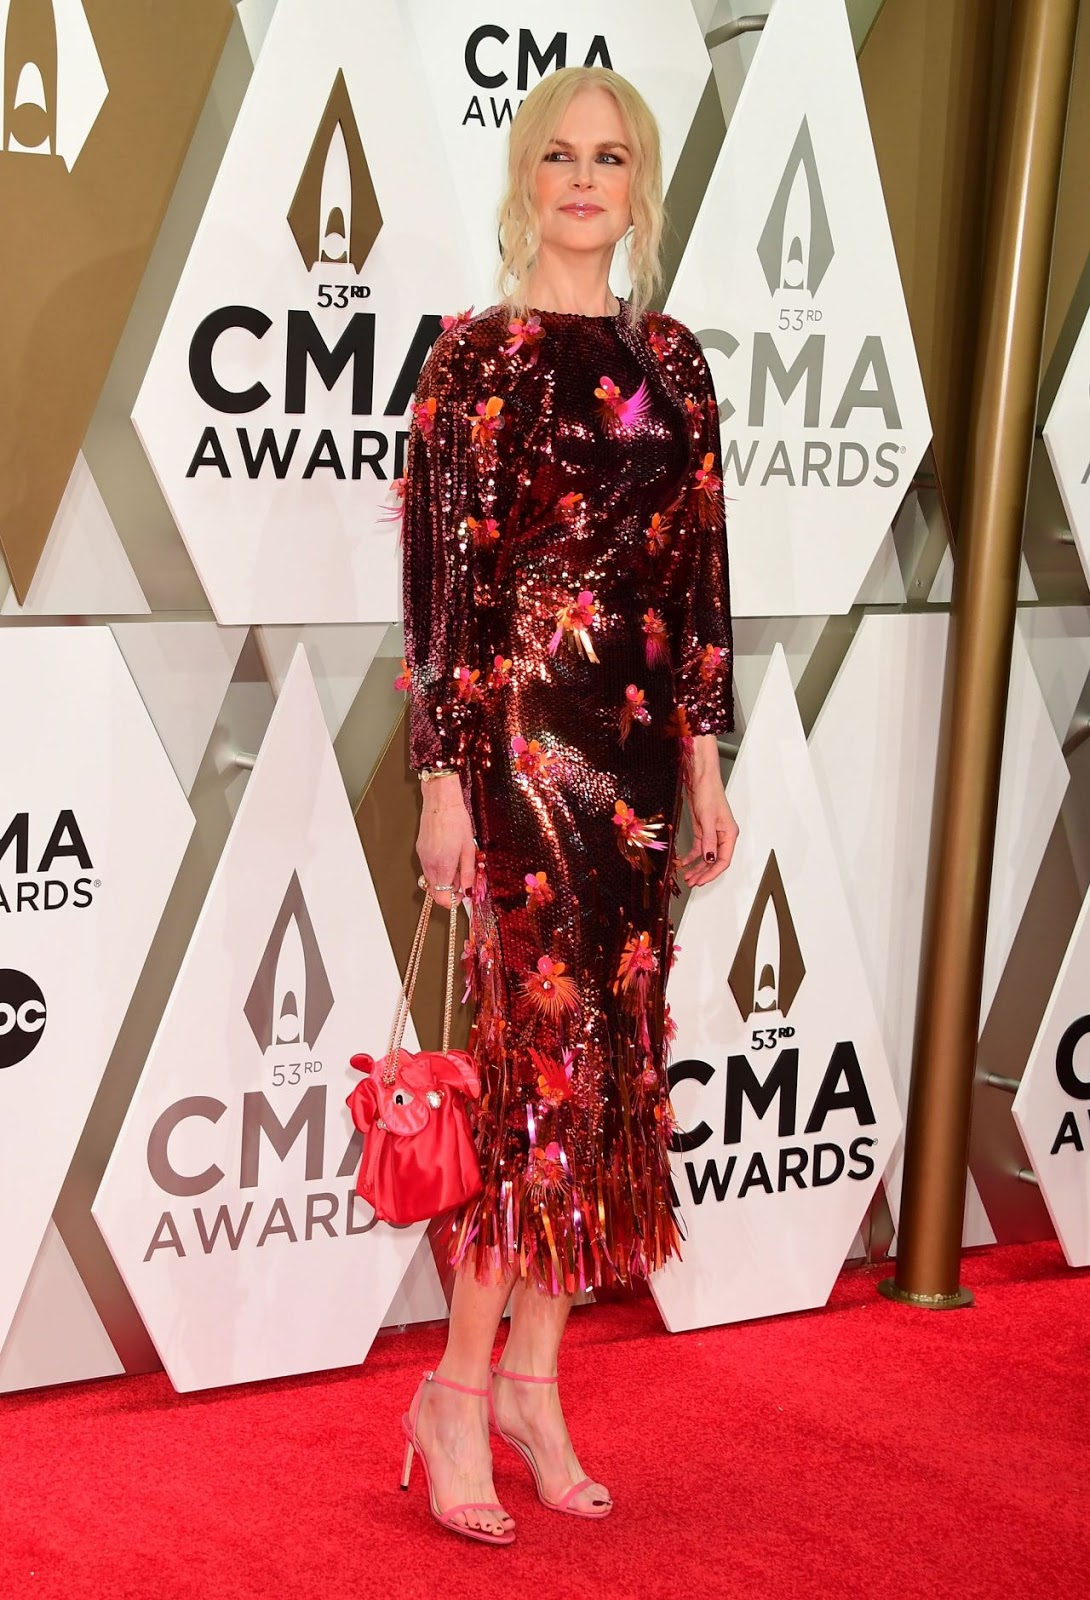 Nicole Kidman dazzles in sequins at the 2019 CMA Awards